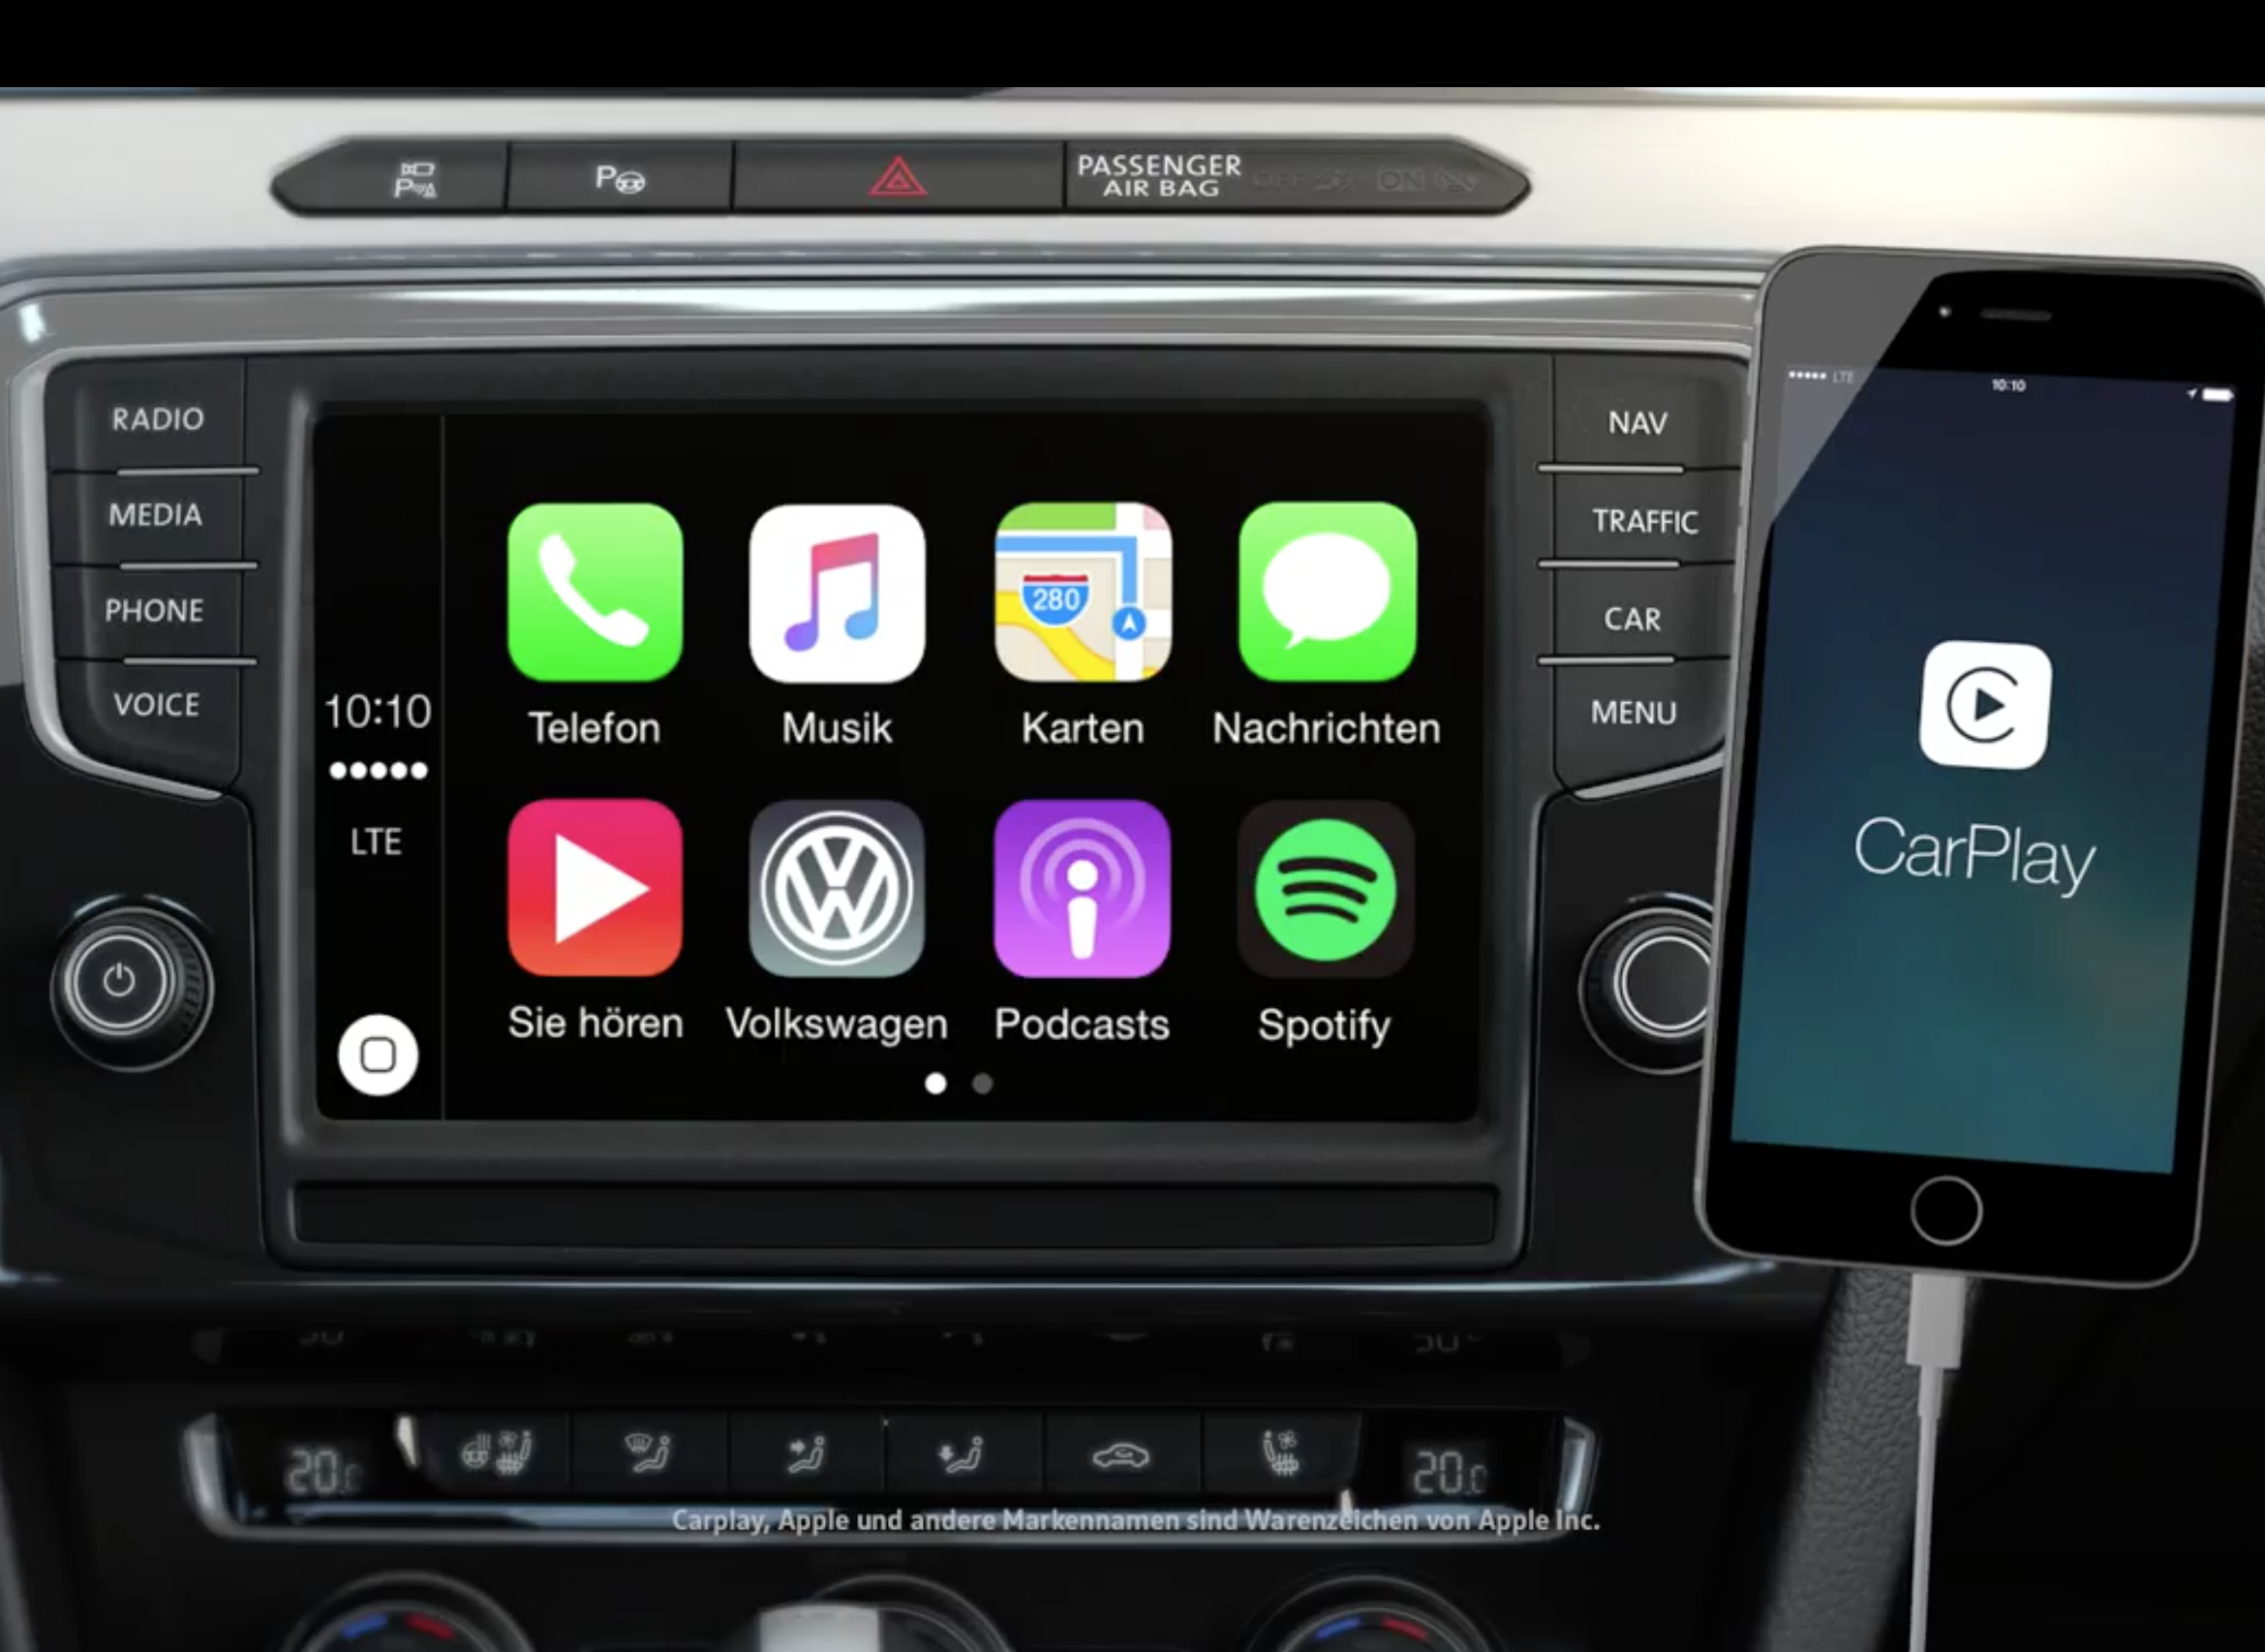 android auto carplay w discover pro my2015 strona 2. Black Bedroom Furniture Sets. Home Design Ideas